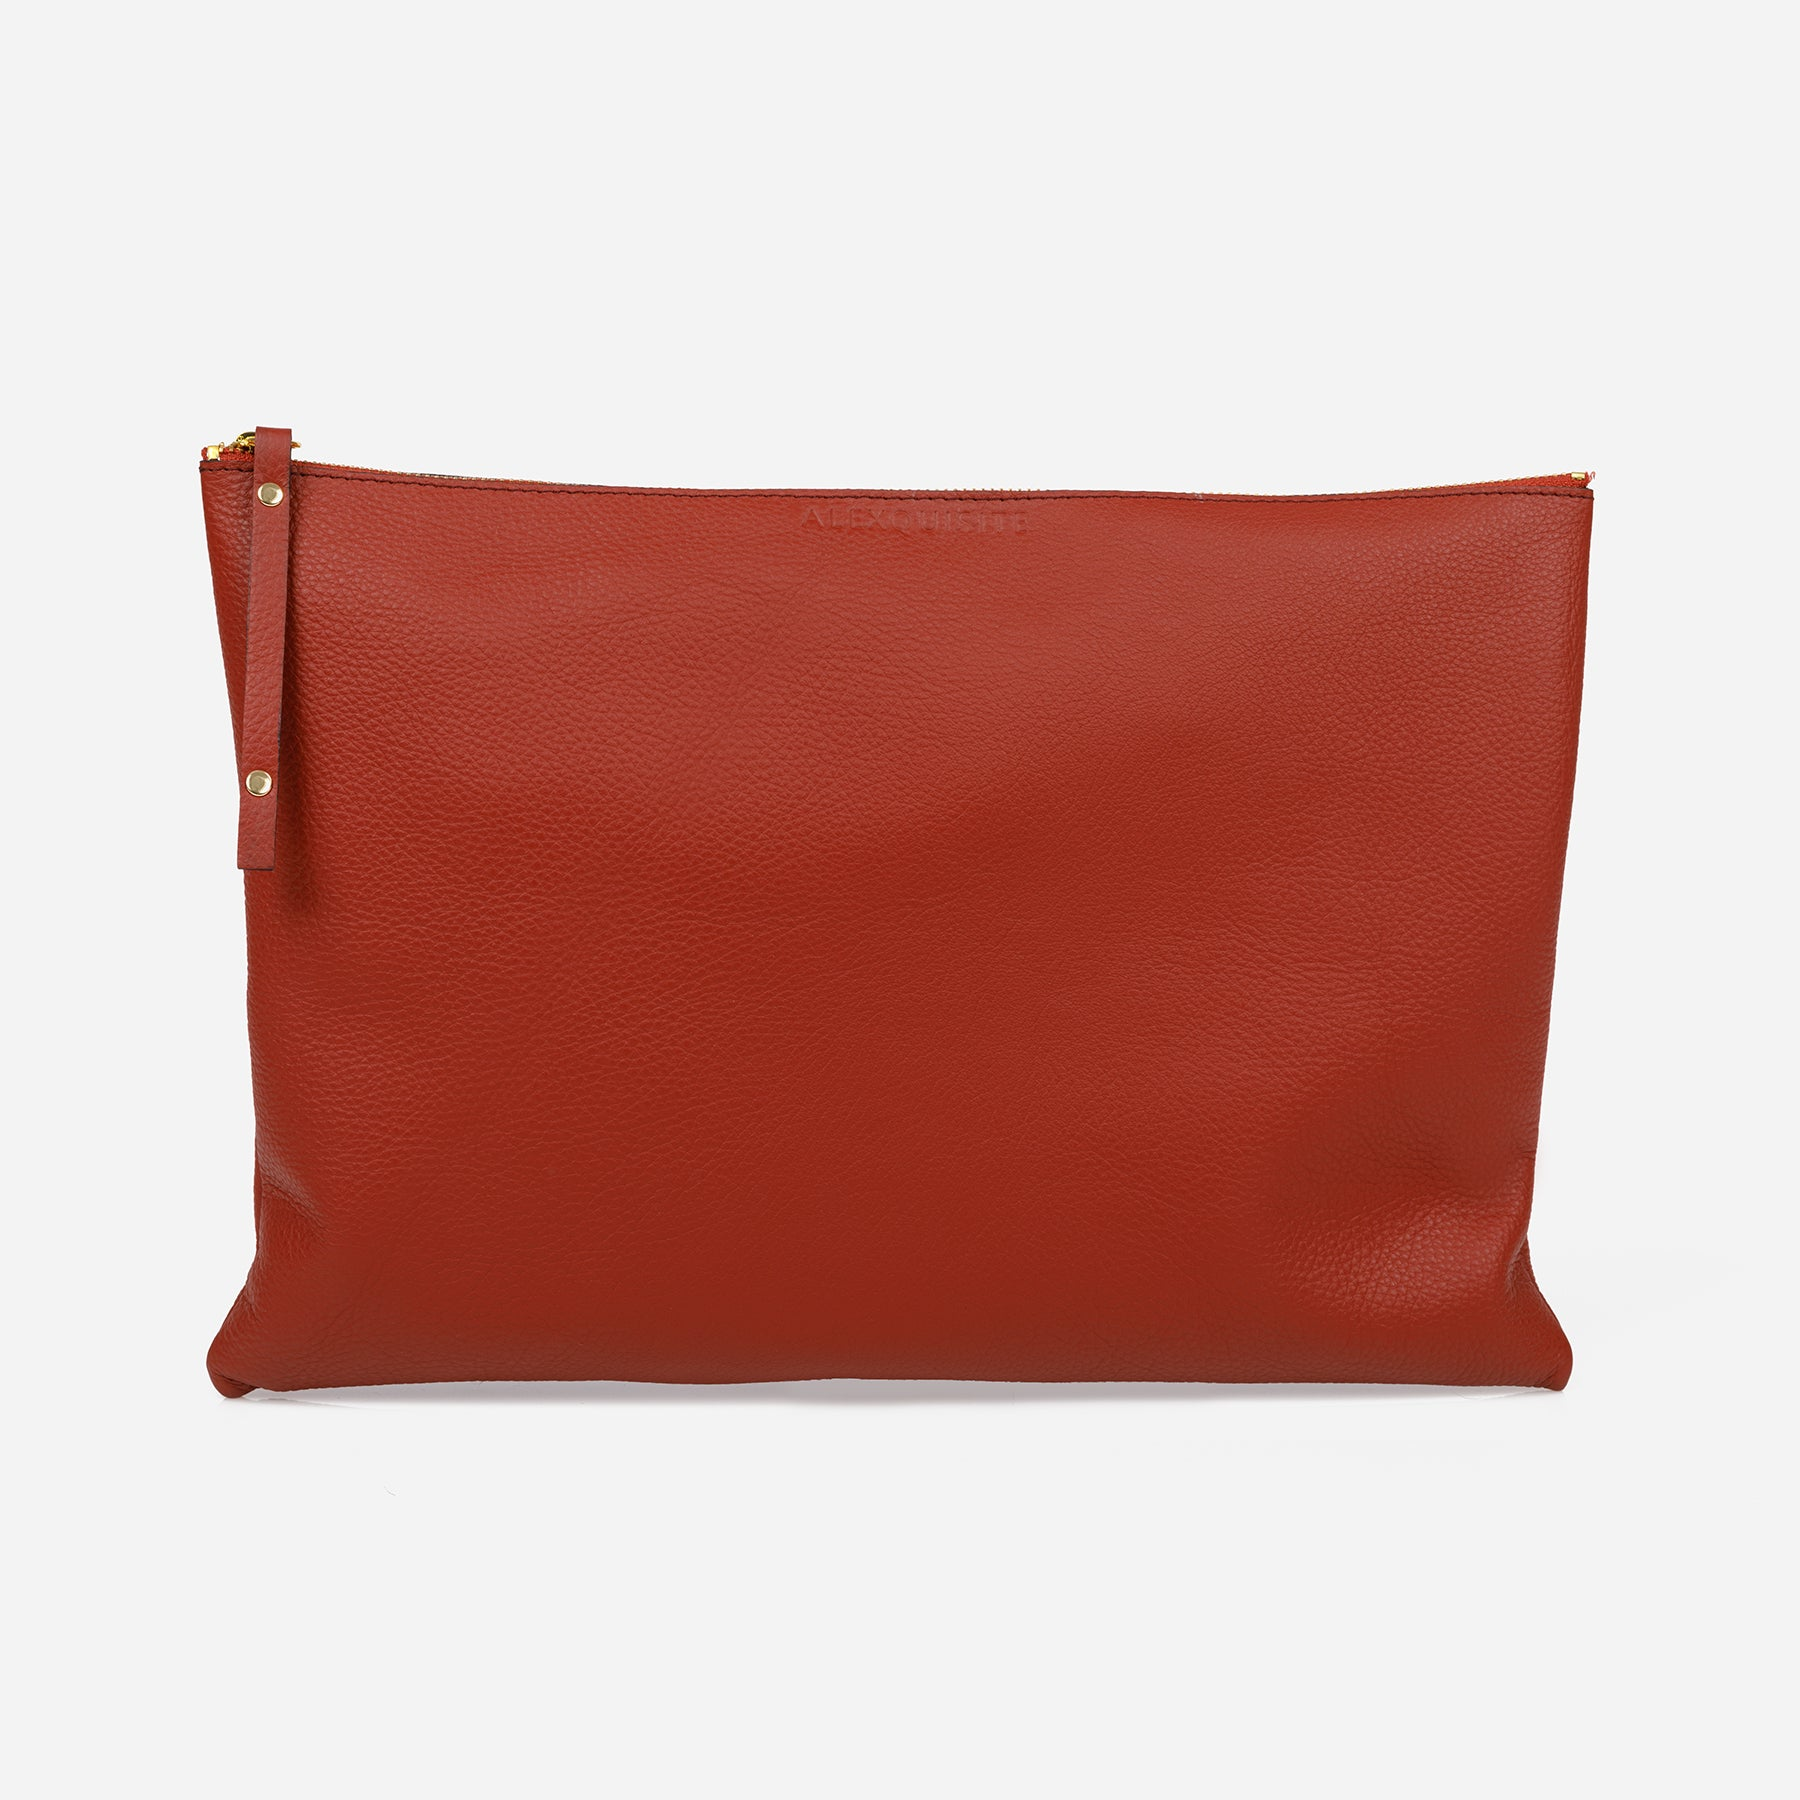 Pure Leather Pouch Bag - Brick by Alexquisite on OOSTOR.com